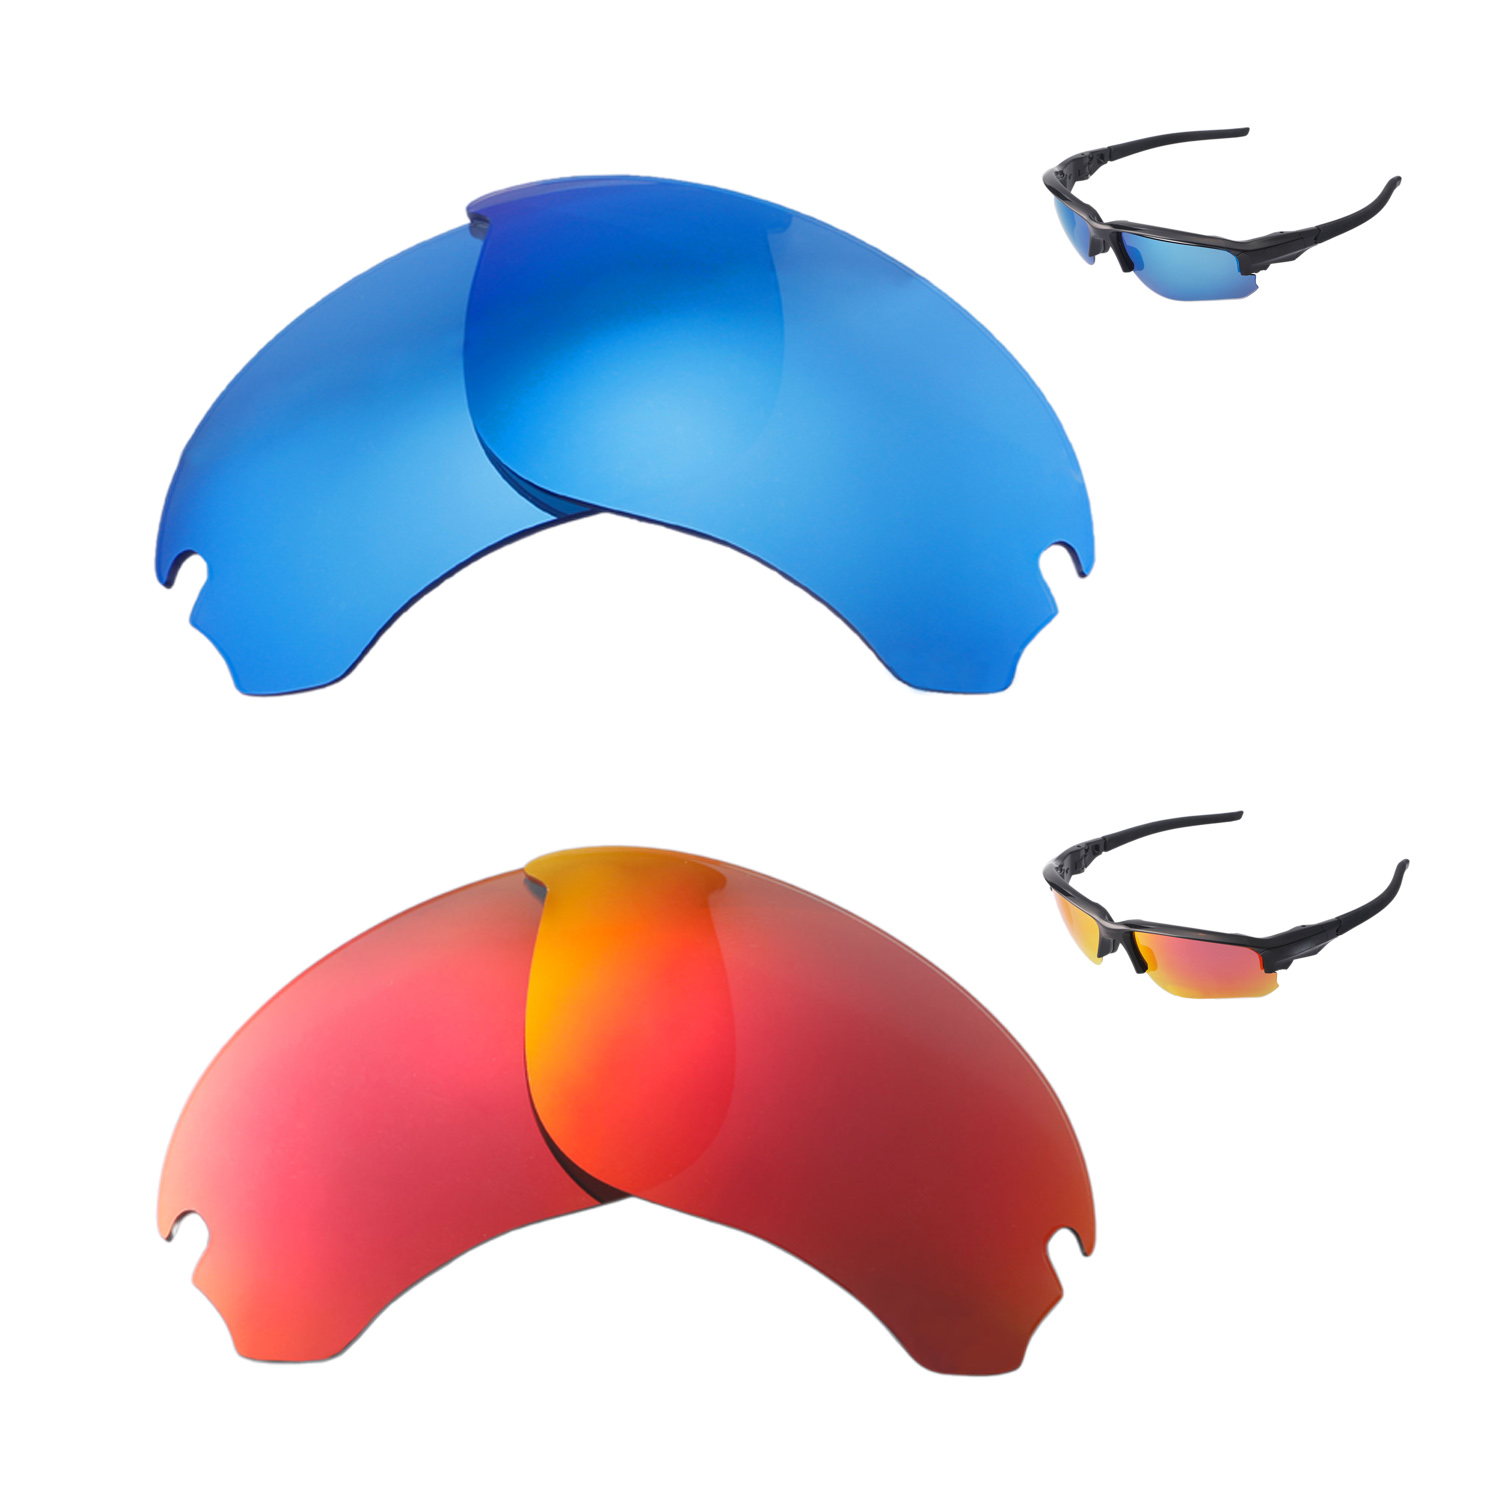 39bddc9d62d57 Details about Walleva Fire Red + Ice Blue Polarized Replacement Lenses For  Oakley Flak Draft